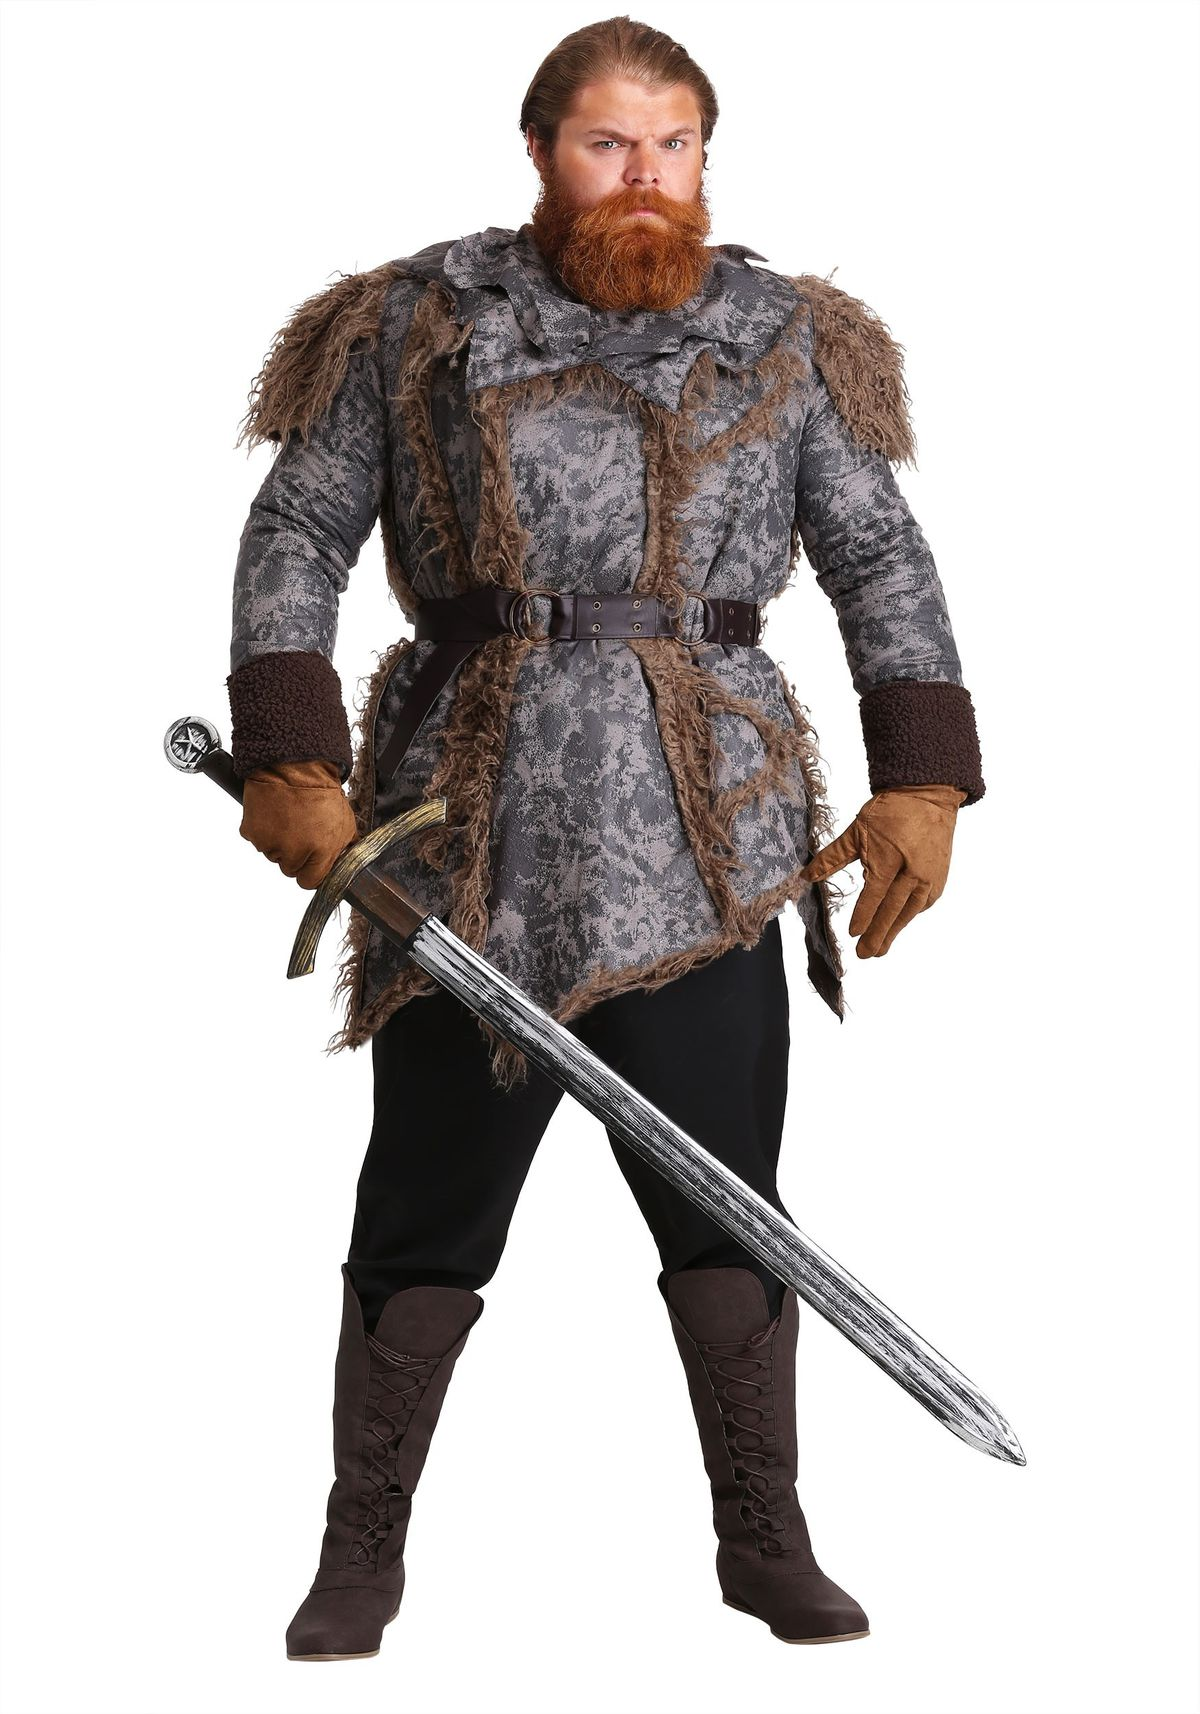 MEN'S PLUS SIZE WILD WARRIOR COSTUME